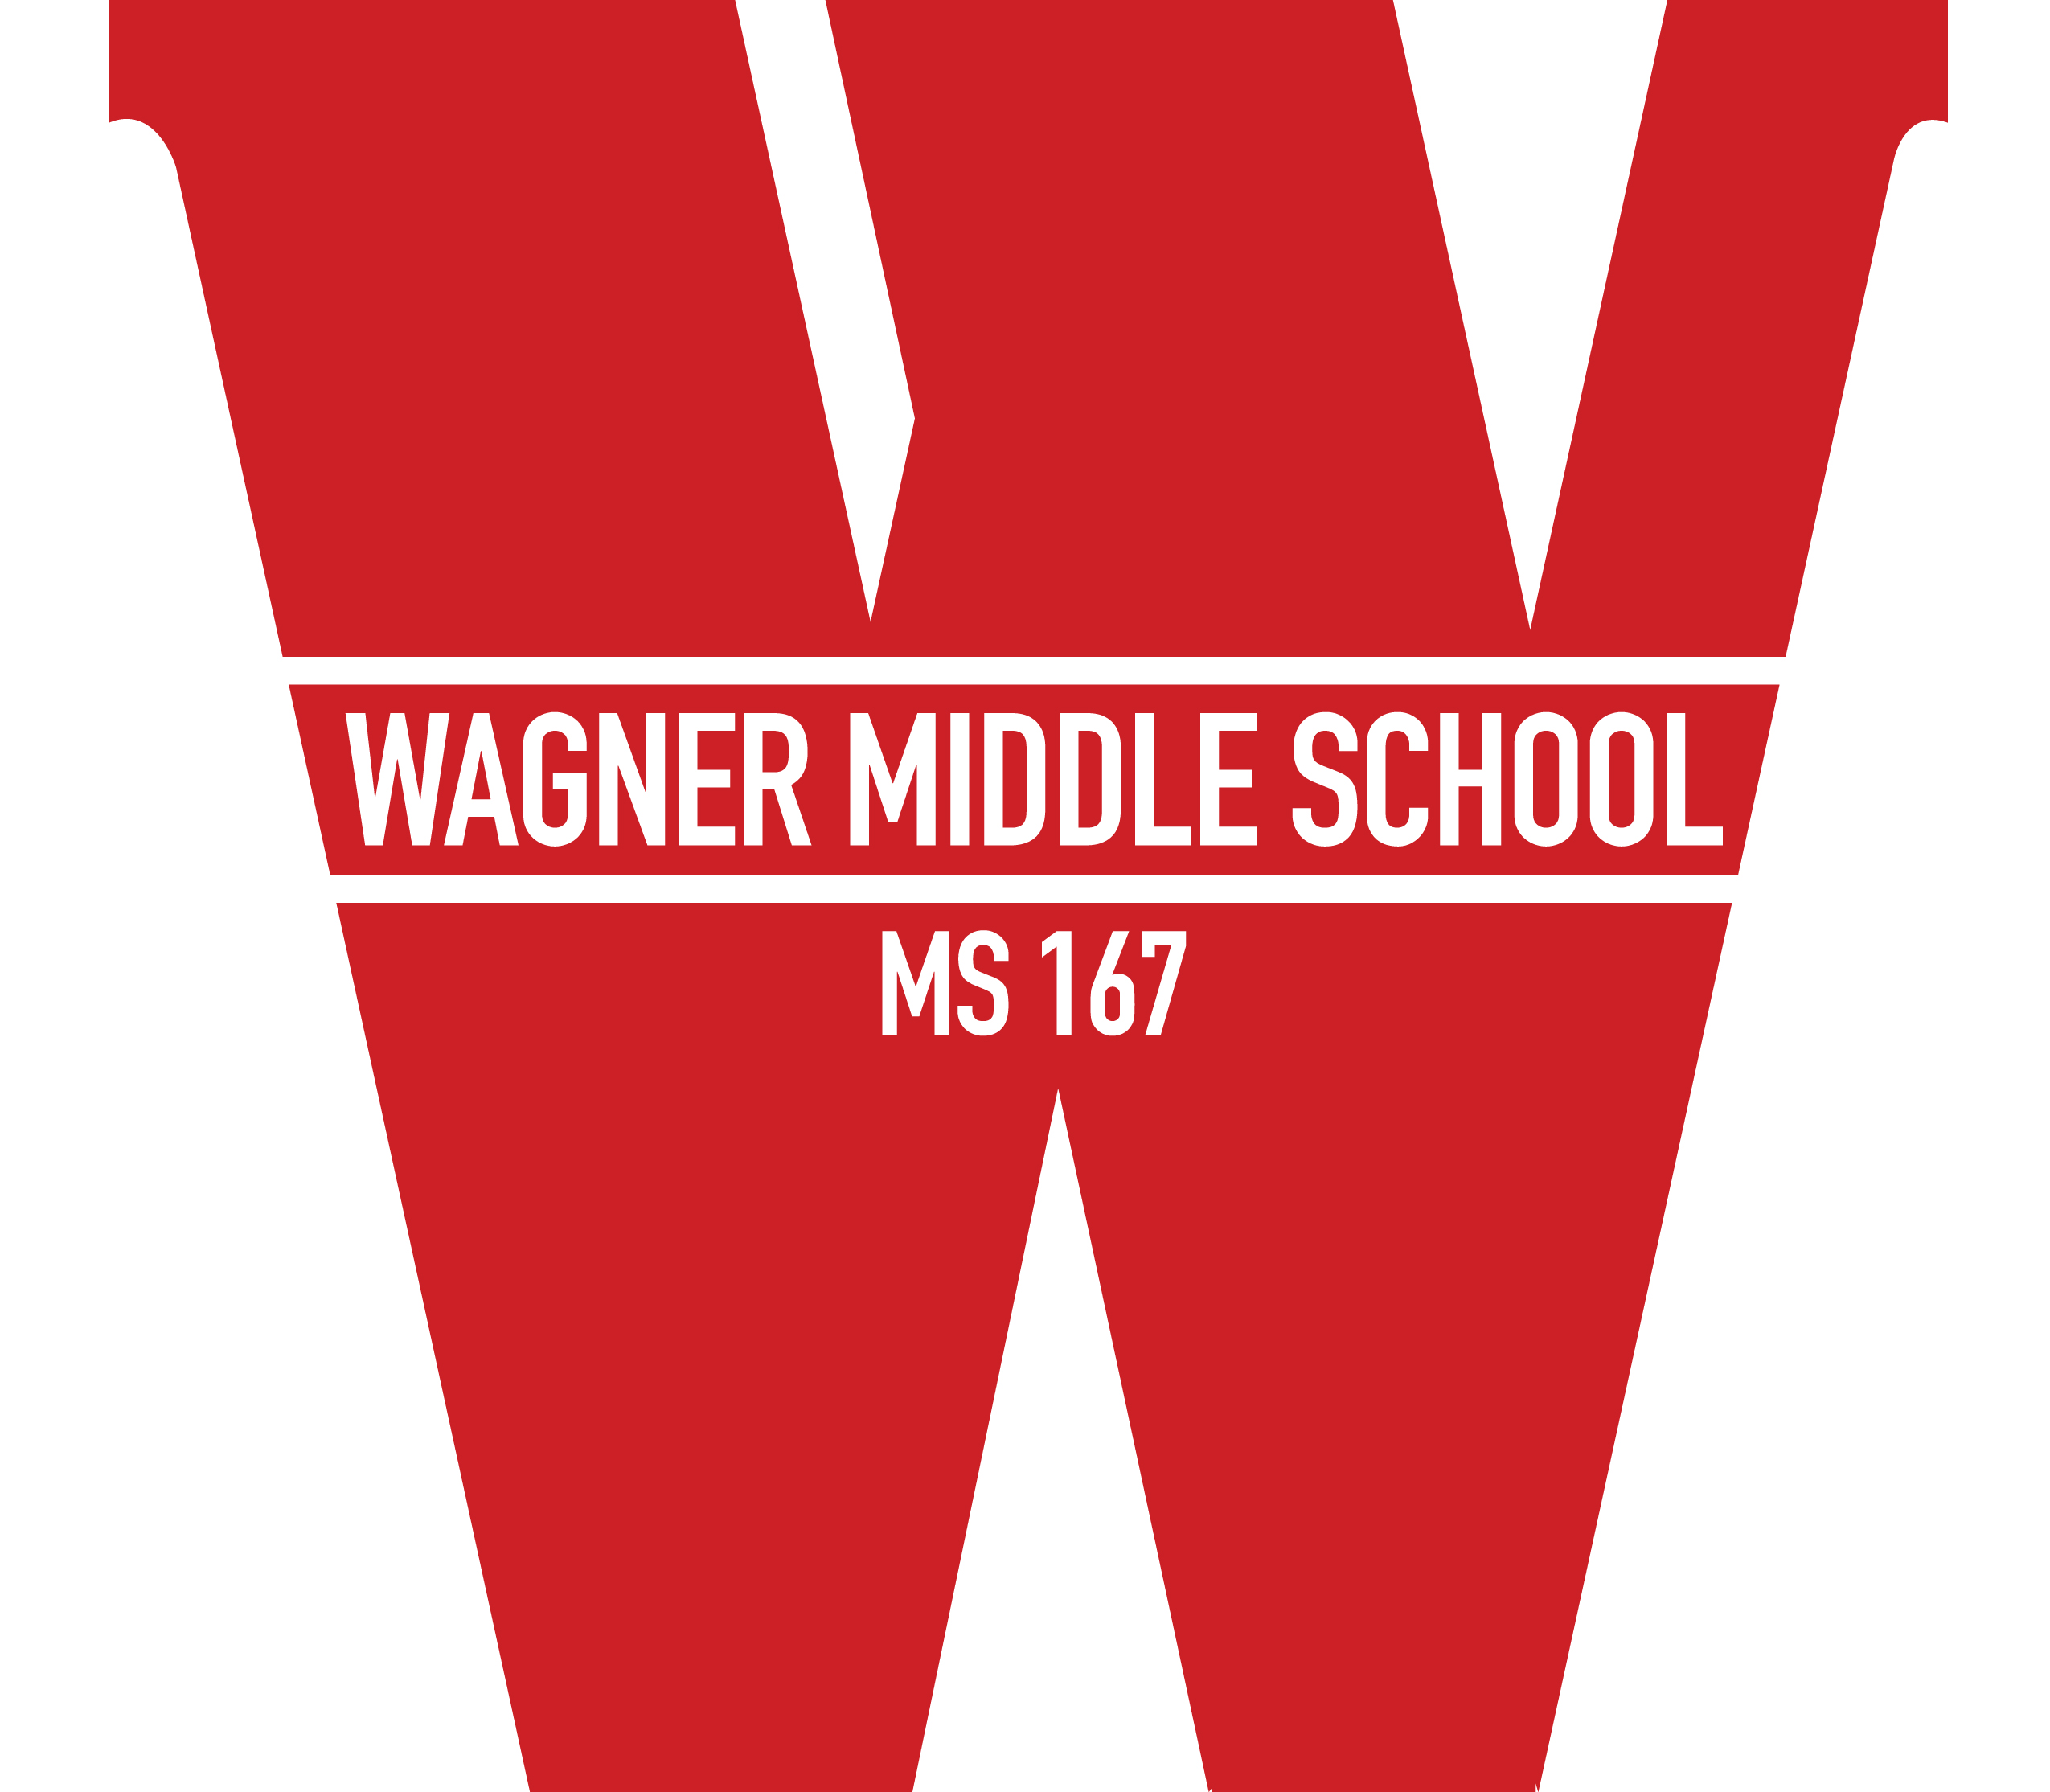 Wagner Home Page - ROBERT F. WAGNER MIDDLE SCHOOL